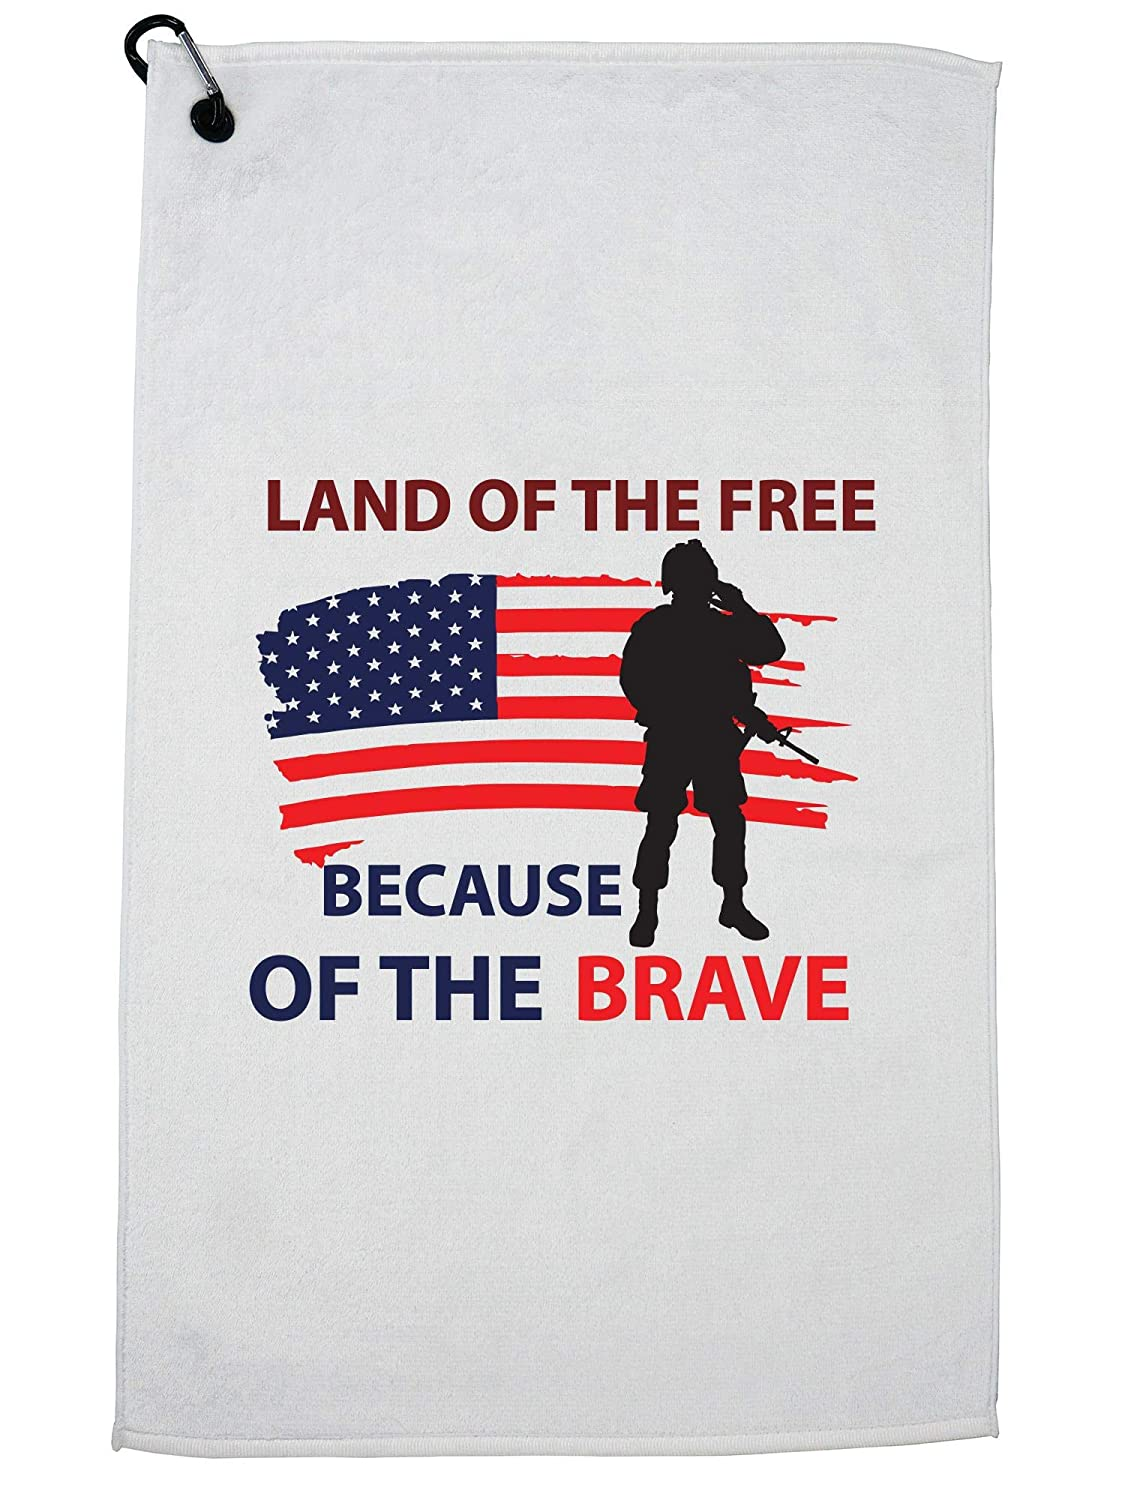 Hollywood Thread Land of The Free Because of The Brave ミリタリーサポートゴルフタオル カラビナクリップ付き   B07GGH9VVC